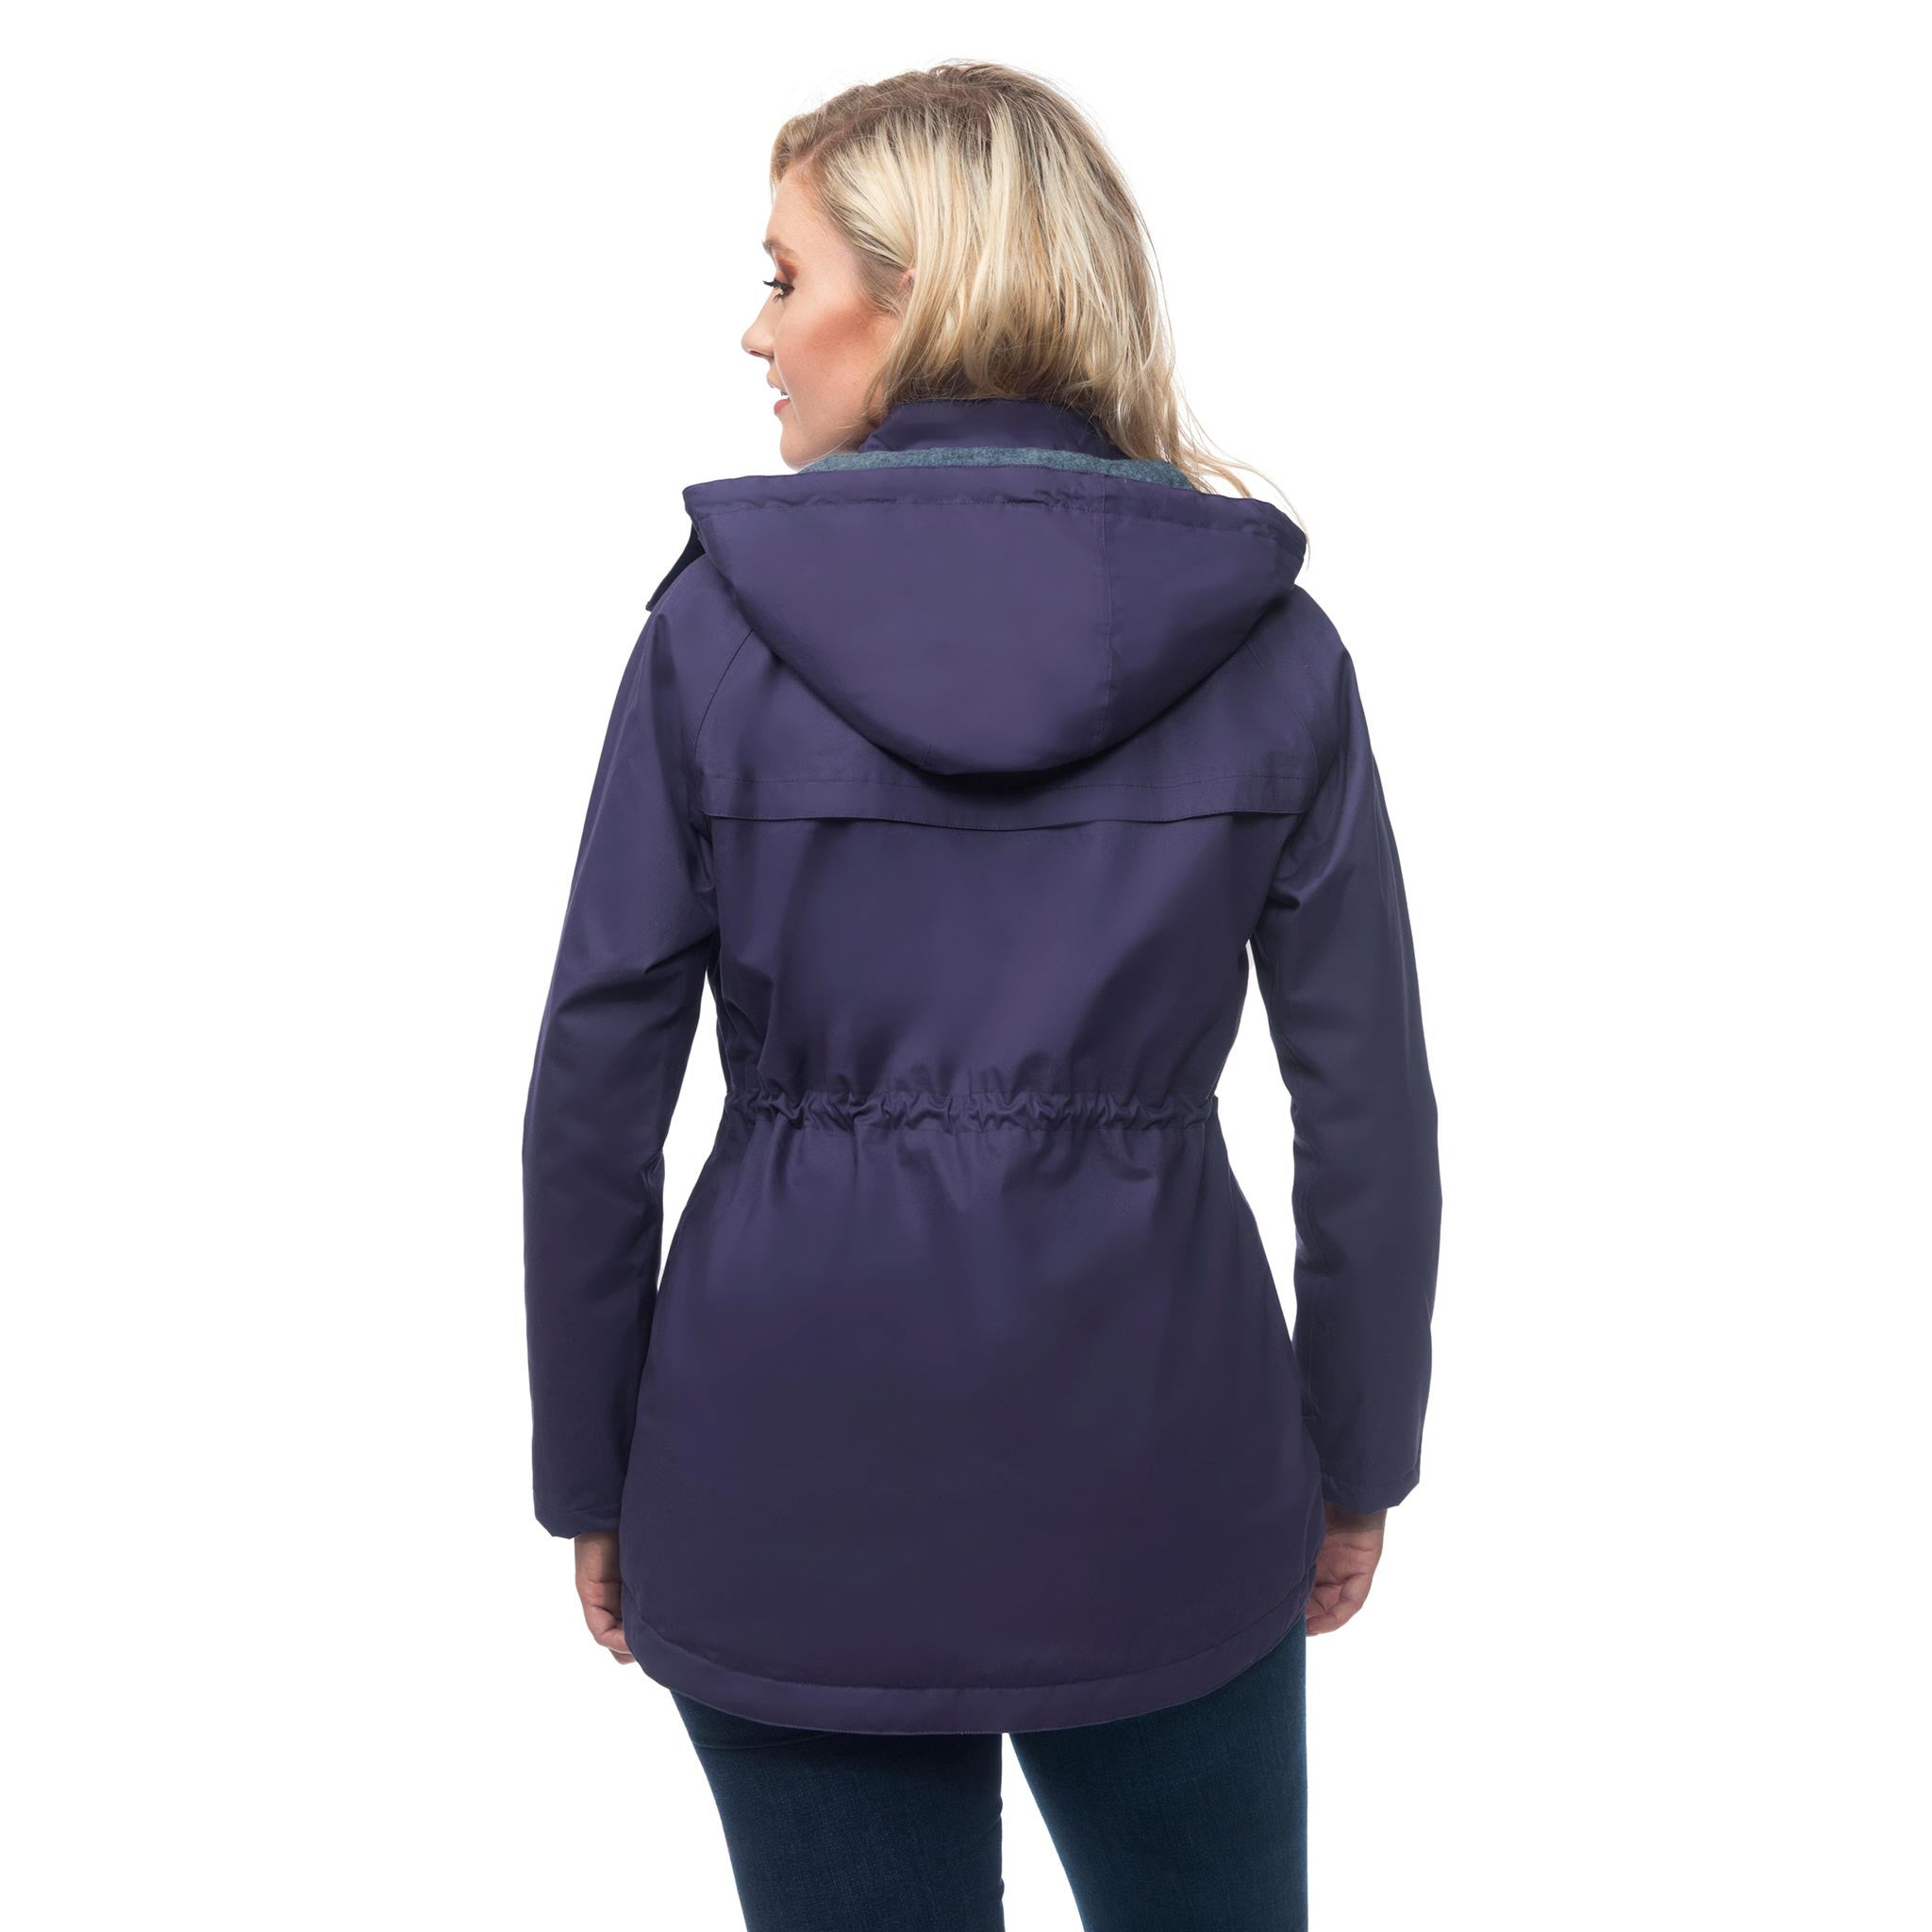 Lighthouse Lana Womens Waterproof Hooded Raincoat in Purple.